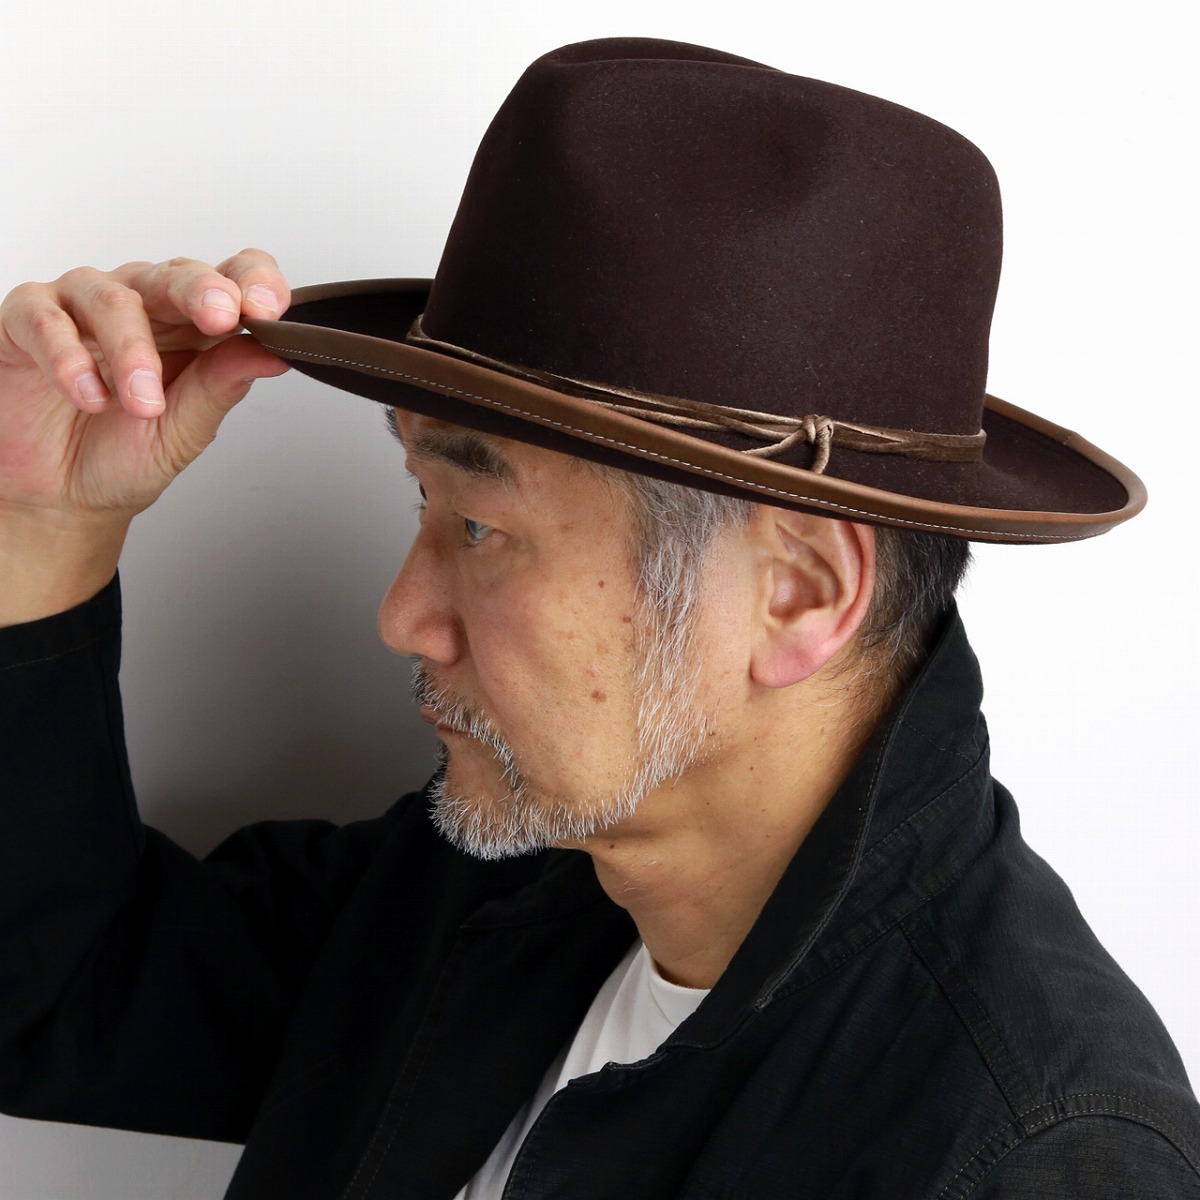 The Stetson broad-brimmed hat men brown tea  wide-brim hat  stetson hat  mail order man hat Christmas gift present that a product made in stetson hat  wide ... 6c2a9710ba4